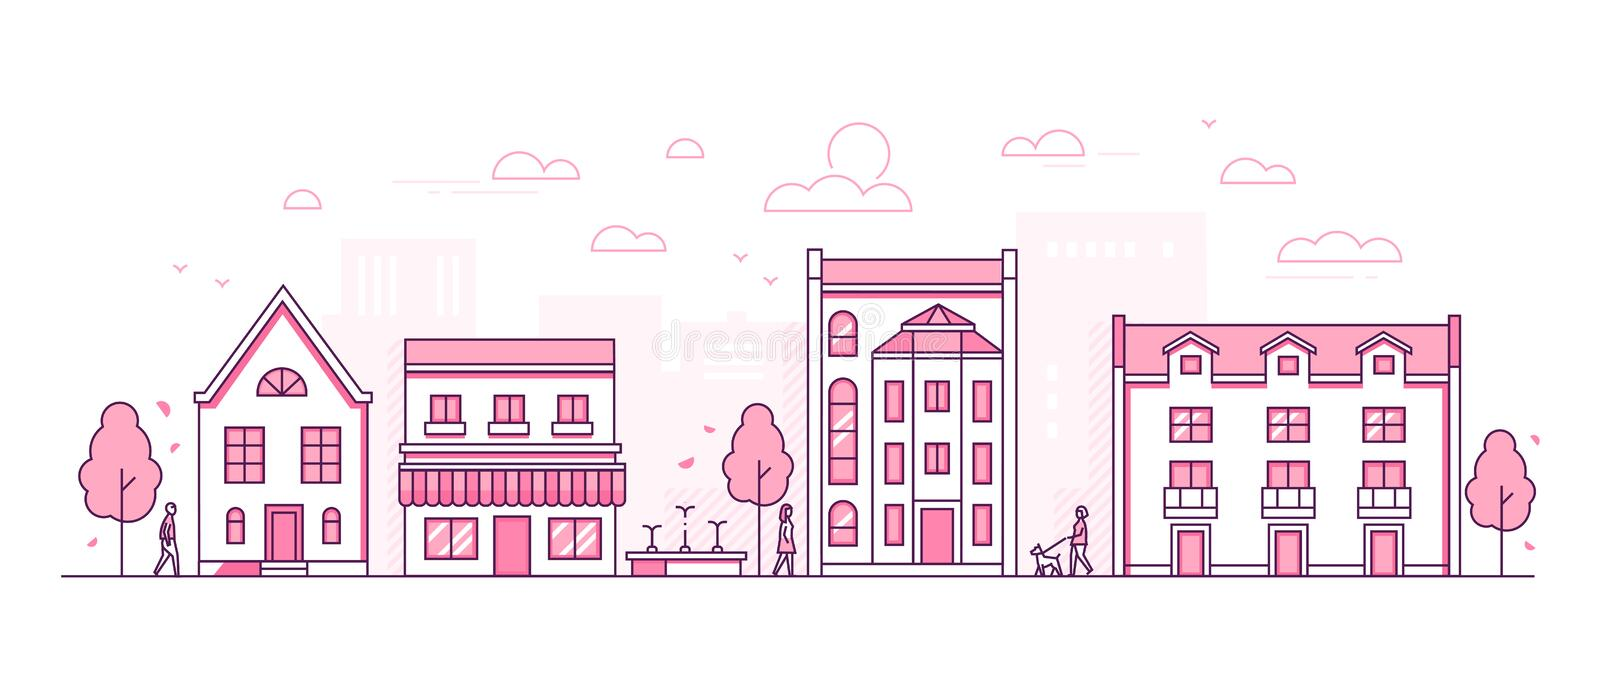 City street - modern thin line design style vector illustration. On white background. Pink colored high quality composition with facades of cottage houses royalty free illustration